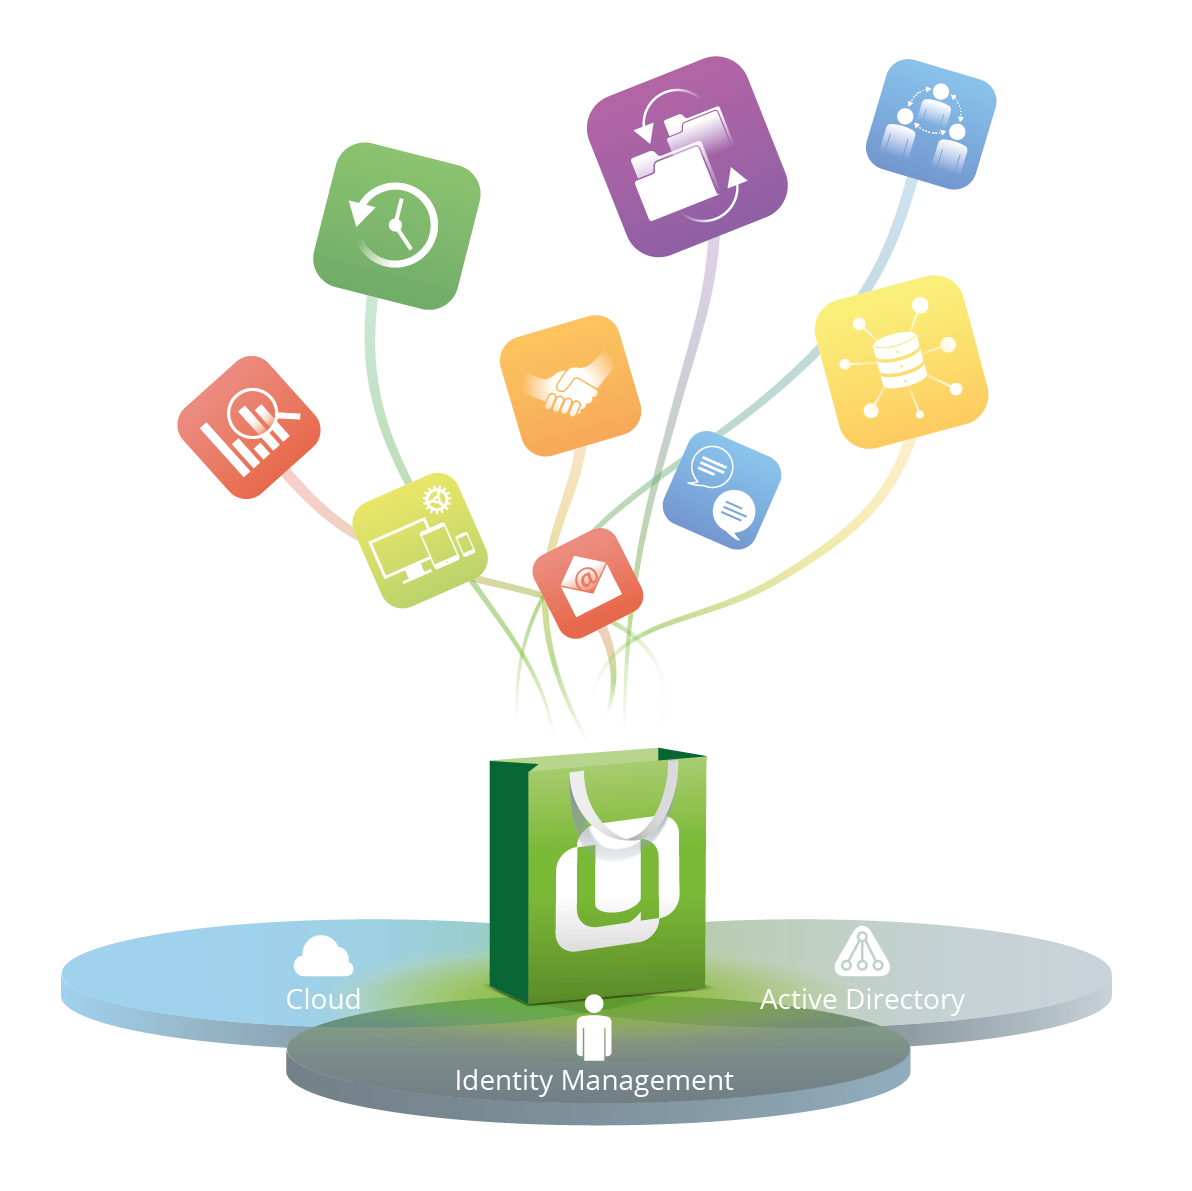 univention App Store open source software